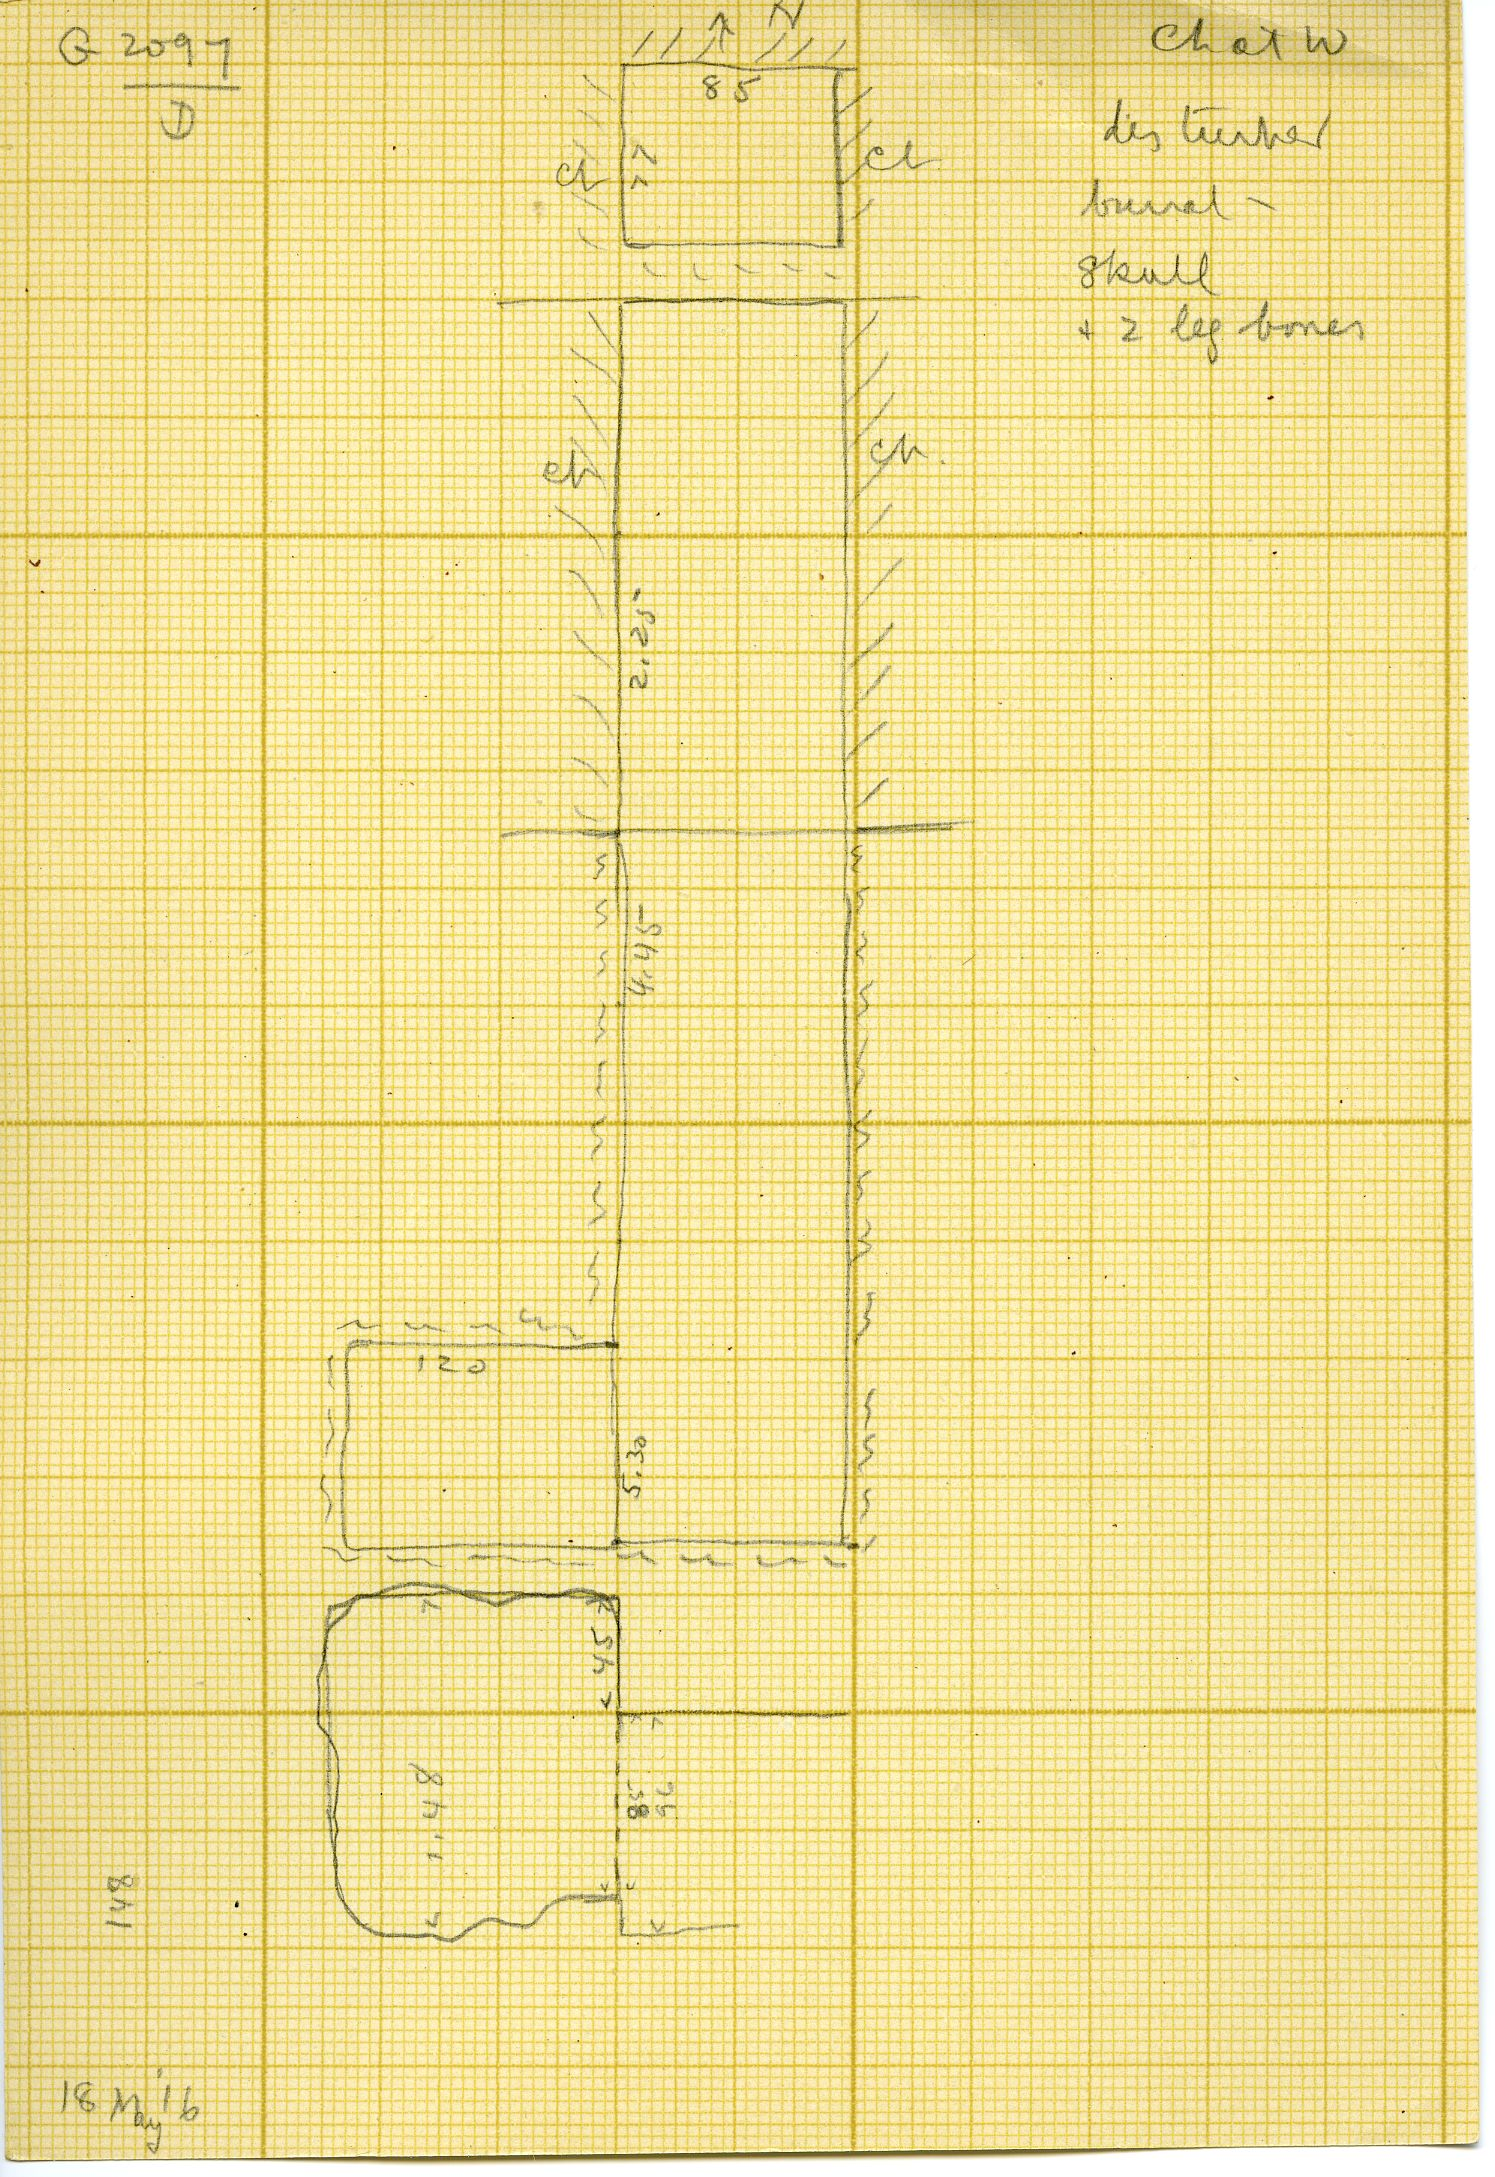 Maps and plans: G 3097, Shaft D